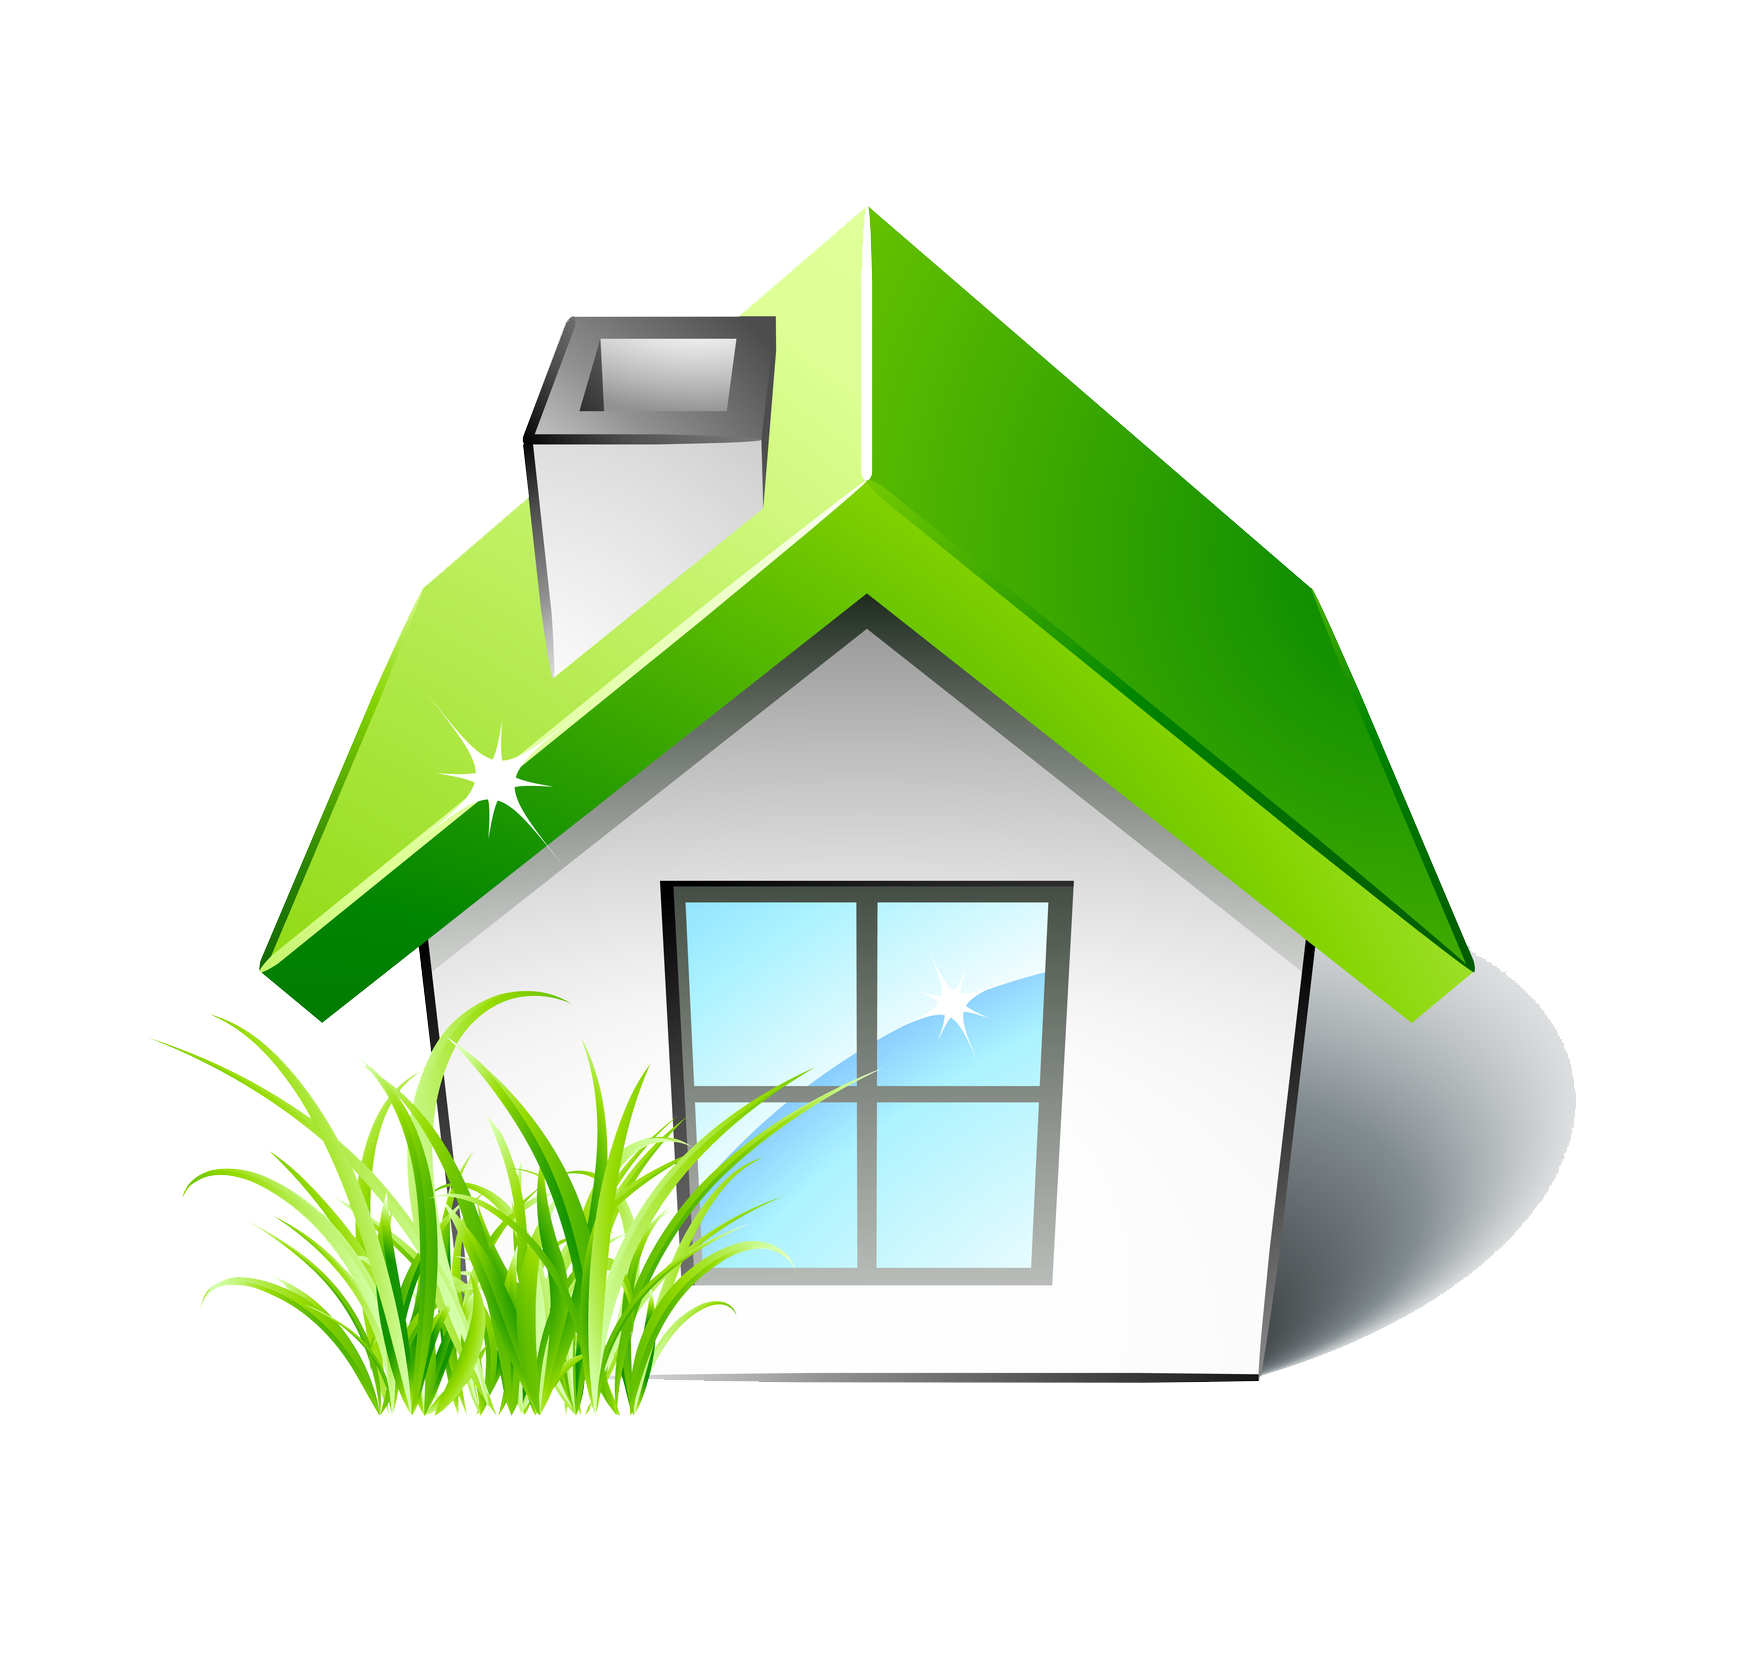 Home HD PNG - 93945